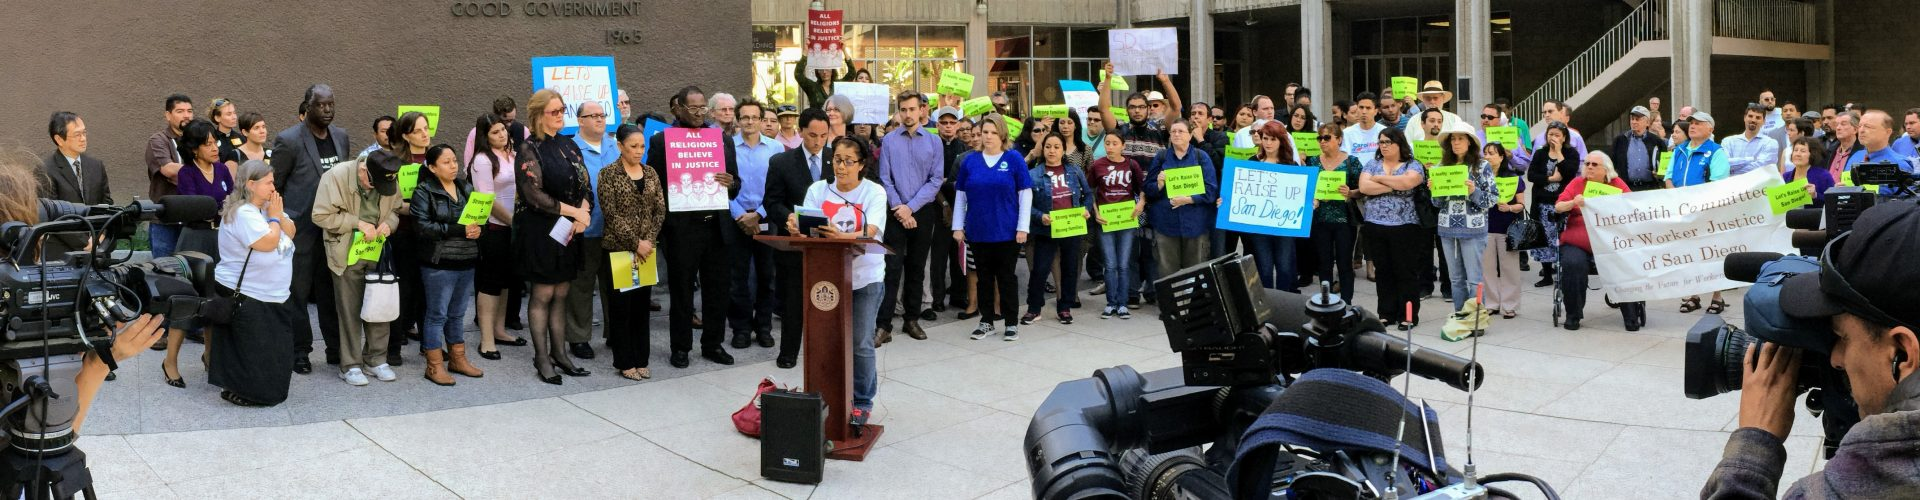 San Diego residents and leaders hold a press conference at City Hall to increase minimum wage